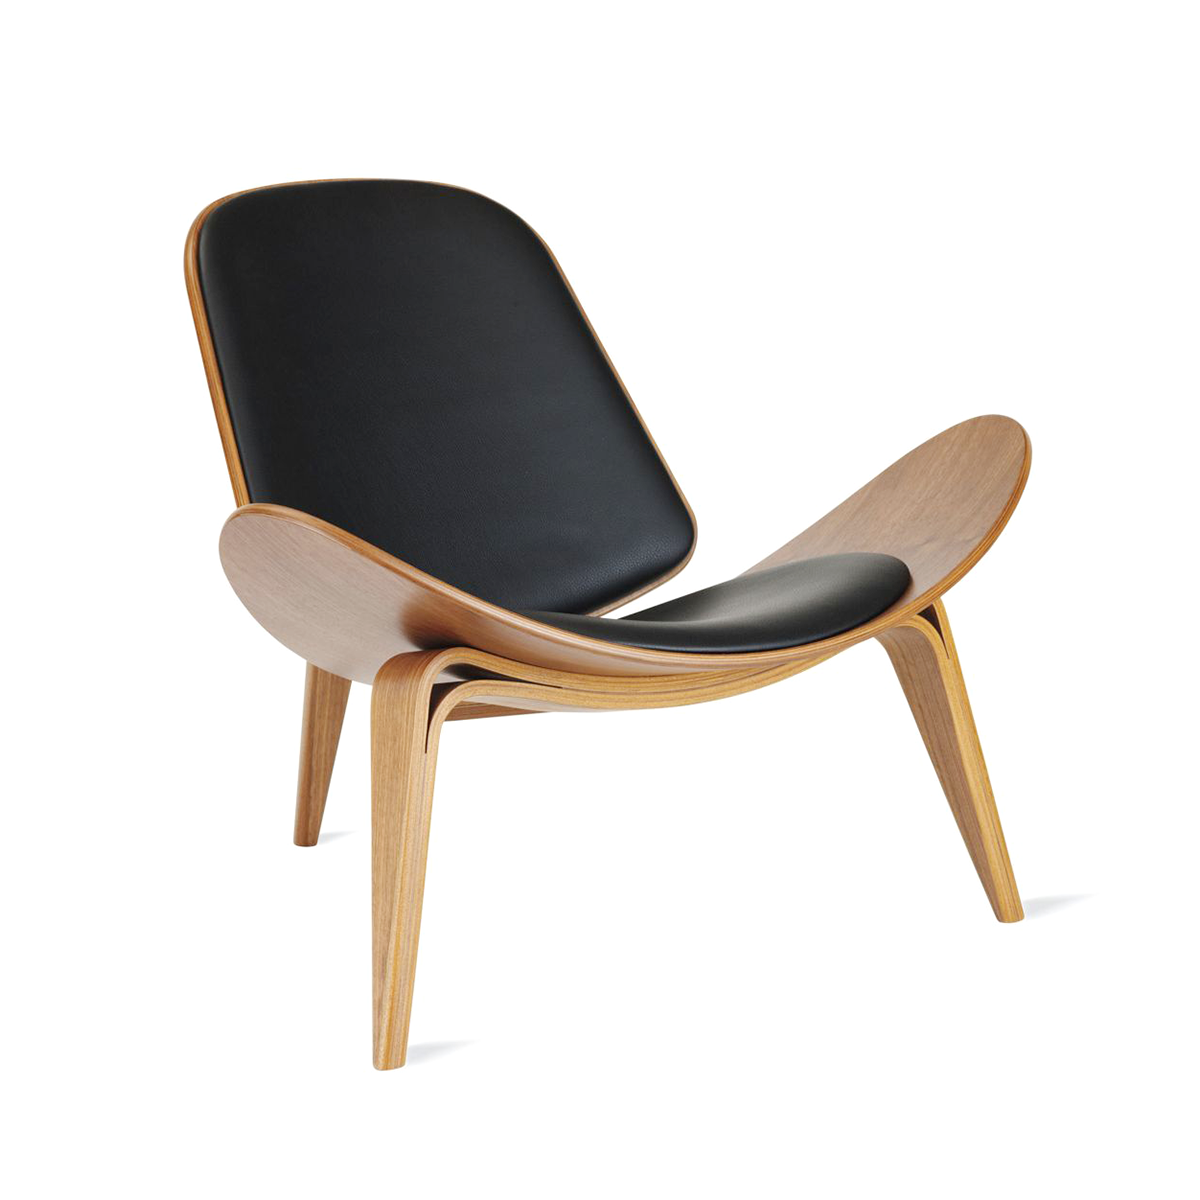 Carl Hansen & Son CH 07 Shell Chair with Oil Finish 威格納設計系列 貝殼椅 油裝處理